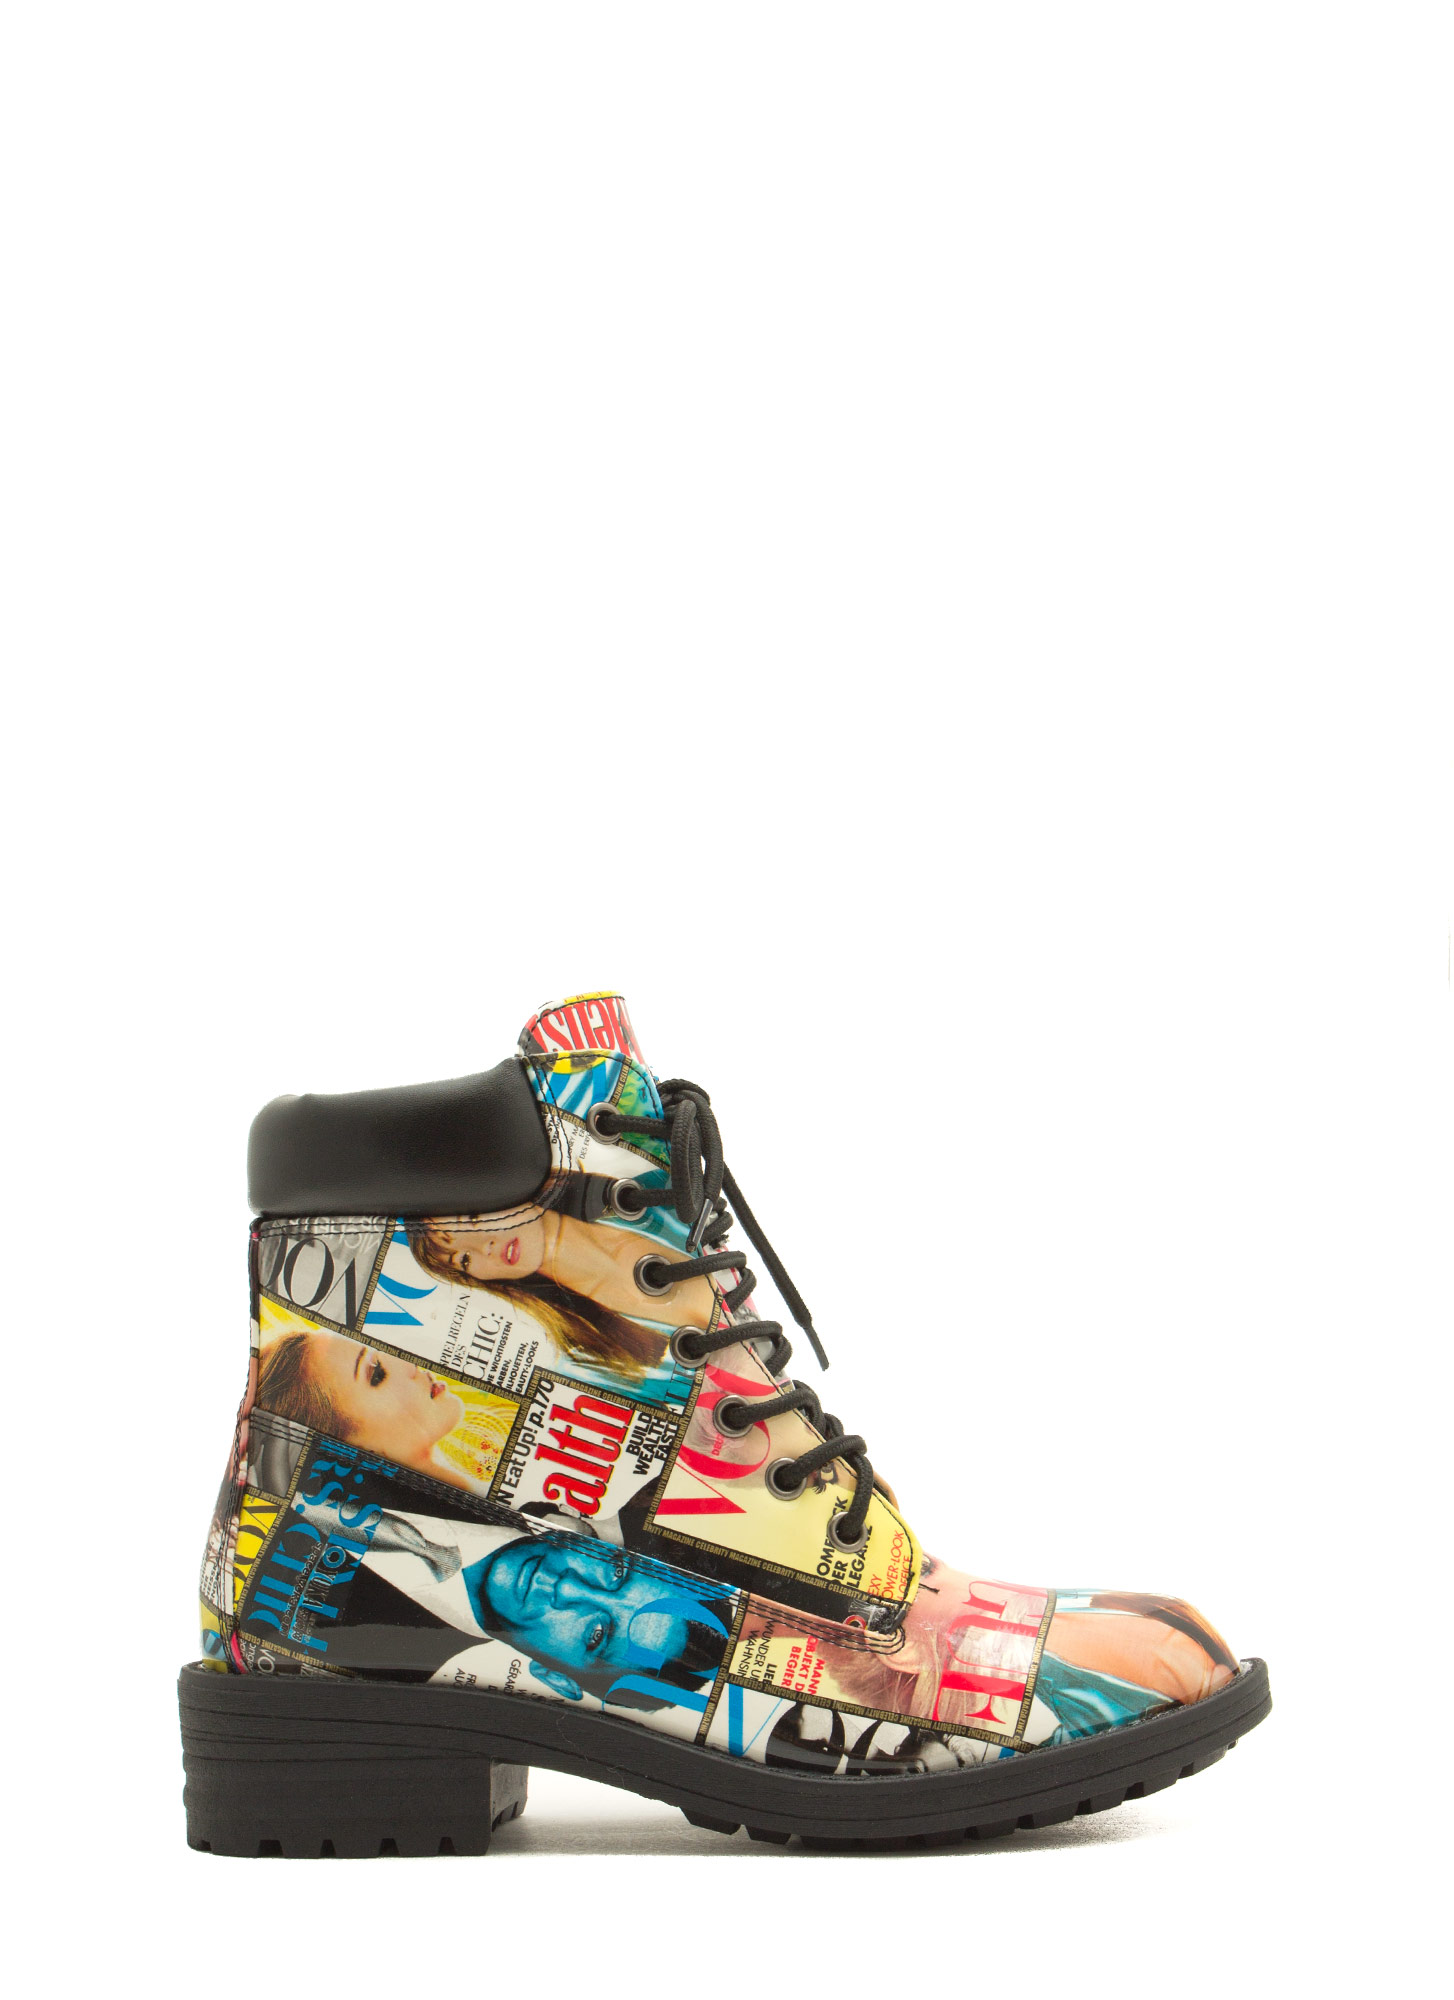 Cover Girl Faux Patent Lace-Up Boots MULTI